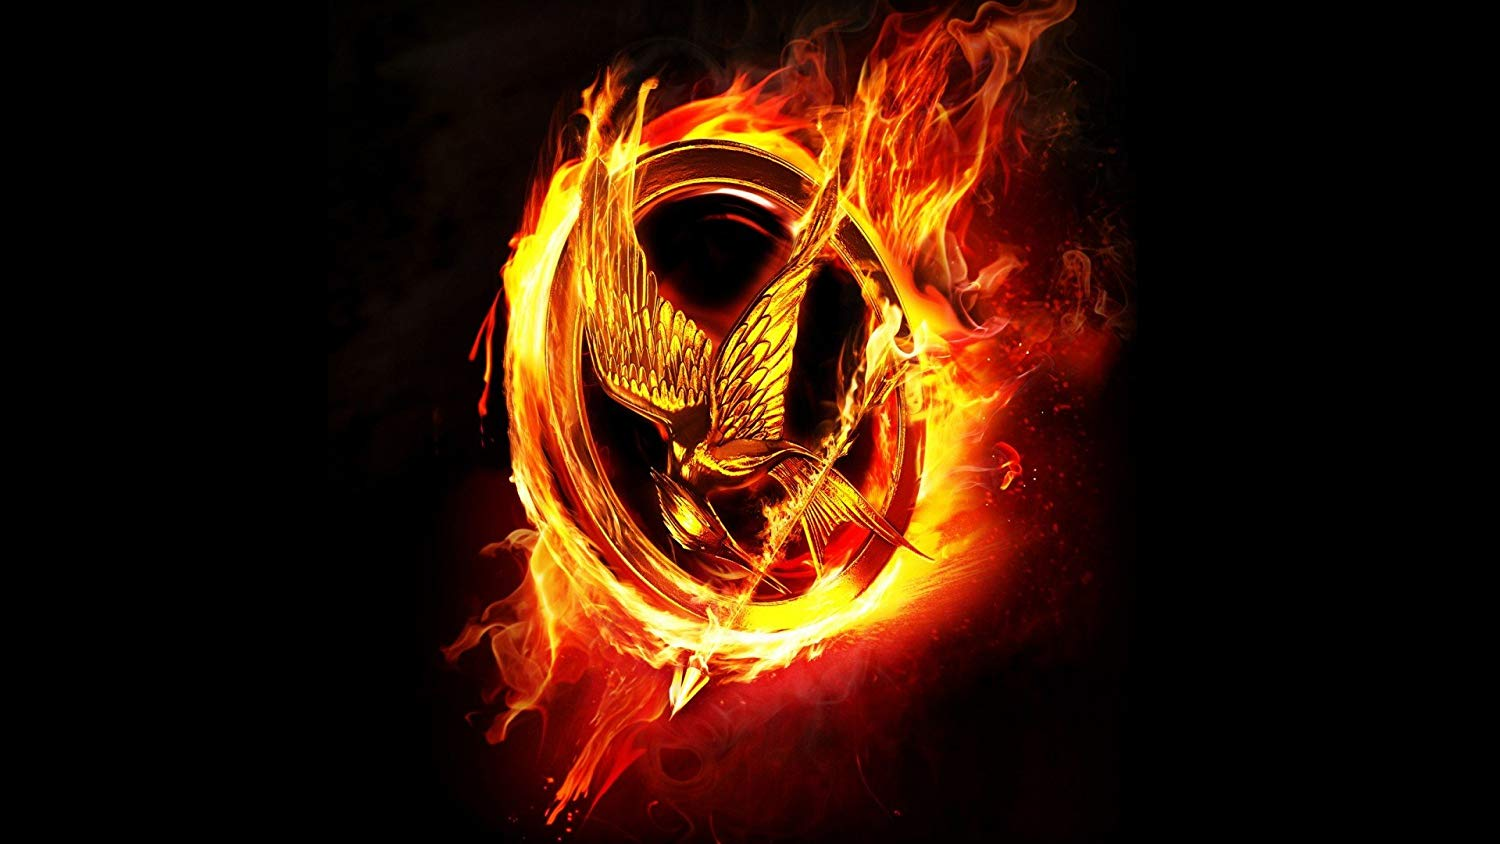 Posterhouzz Movie The Hunger Games Hbo Black Fire Flame Hunger Games Background 1500x844 Wallpaper Teahub Io